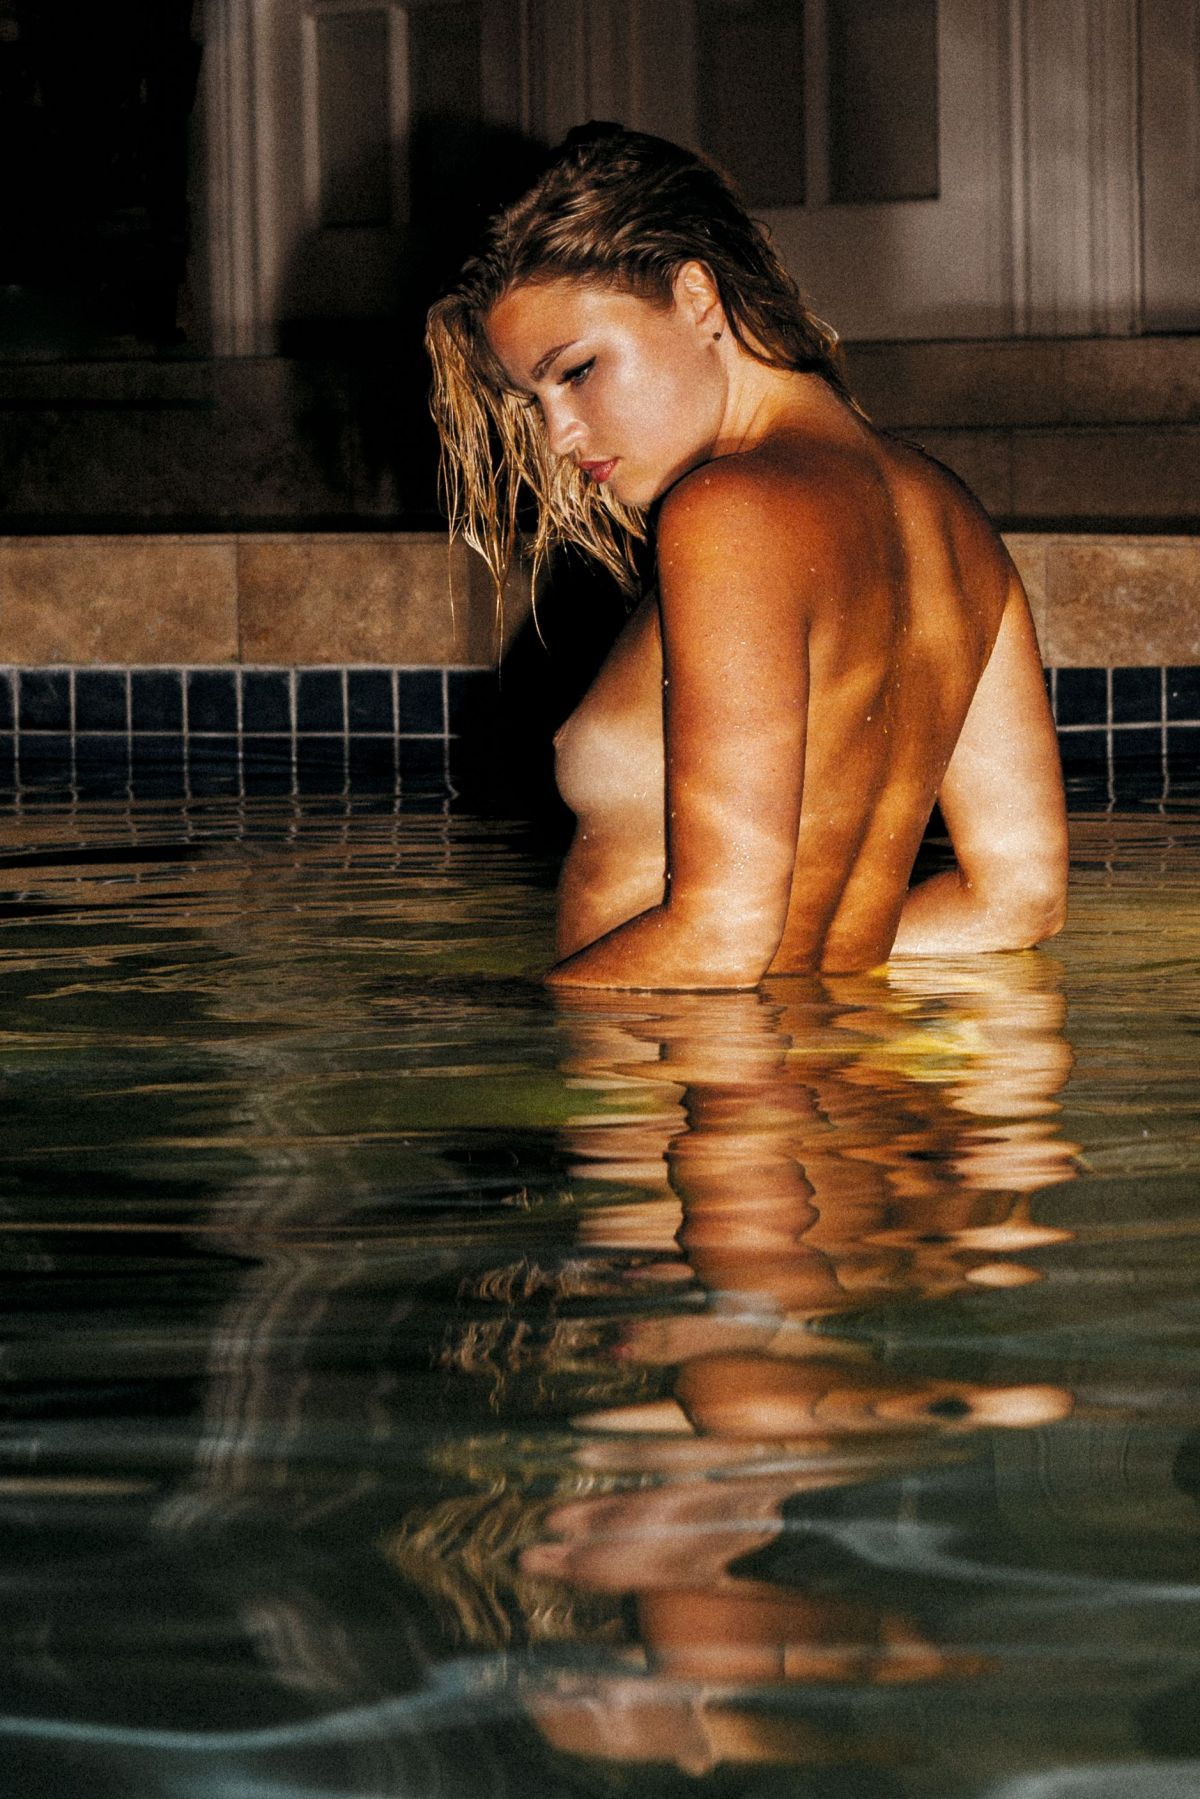 Instagram Jennifer Akerman nudes (45 foto and video), Pussy, Hot, Feet, butt 2006